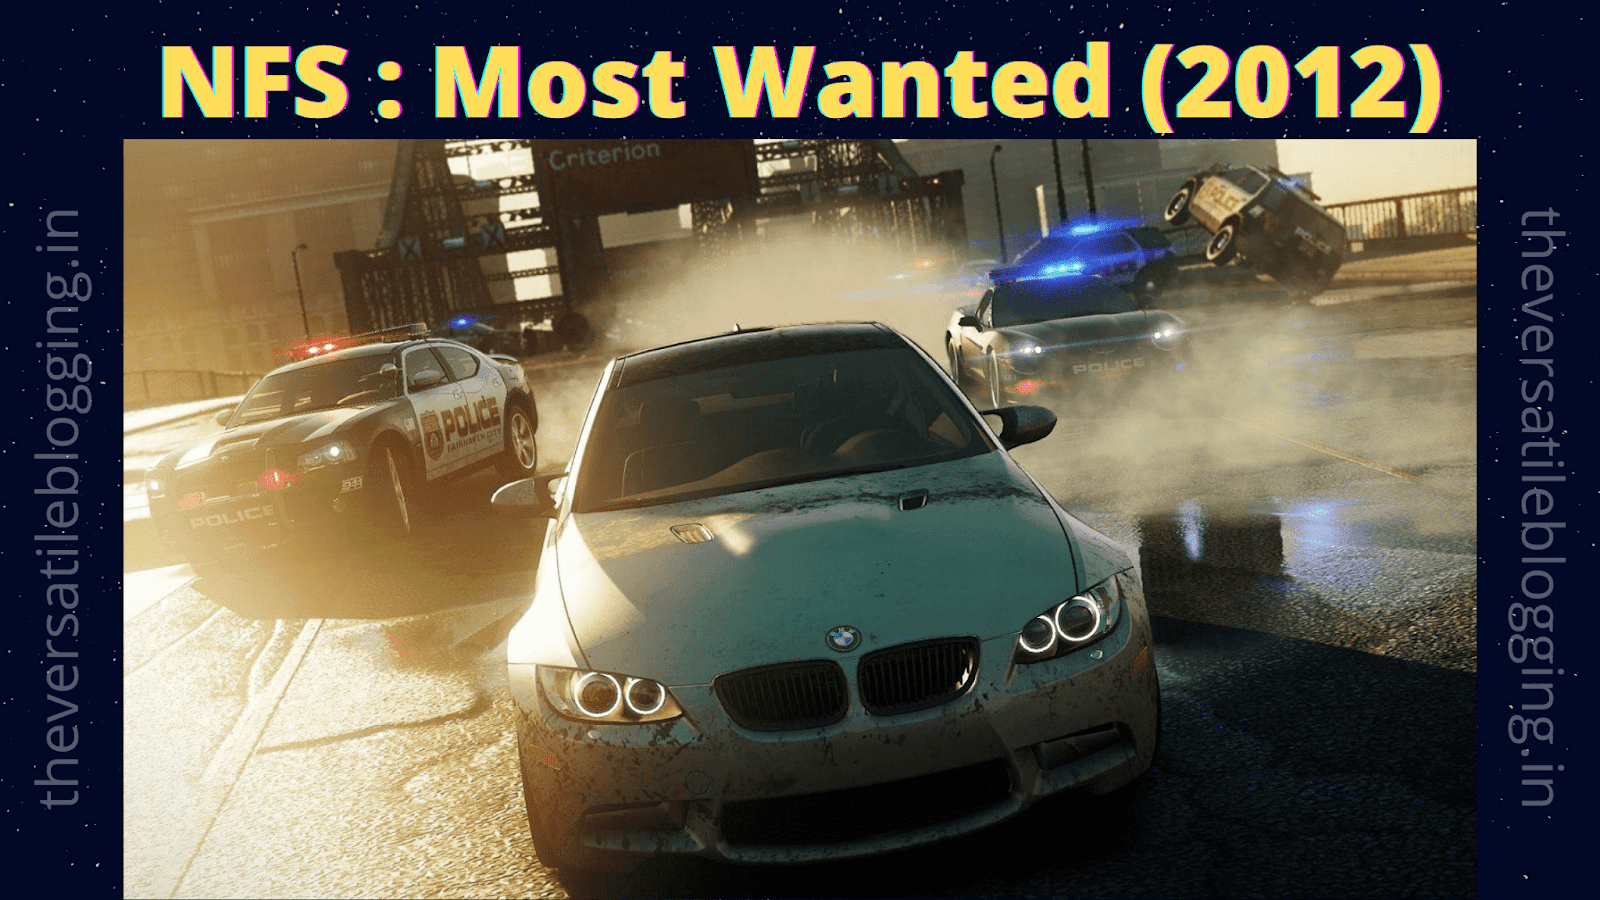 Best Car Racing Games For Windows 7 | NFS:Most Wanted (2012)